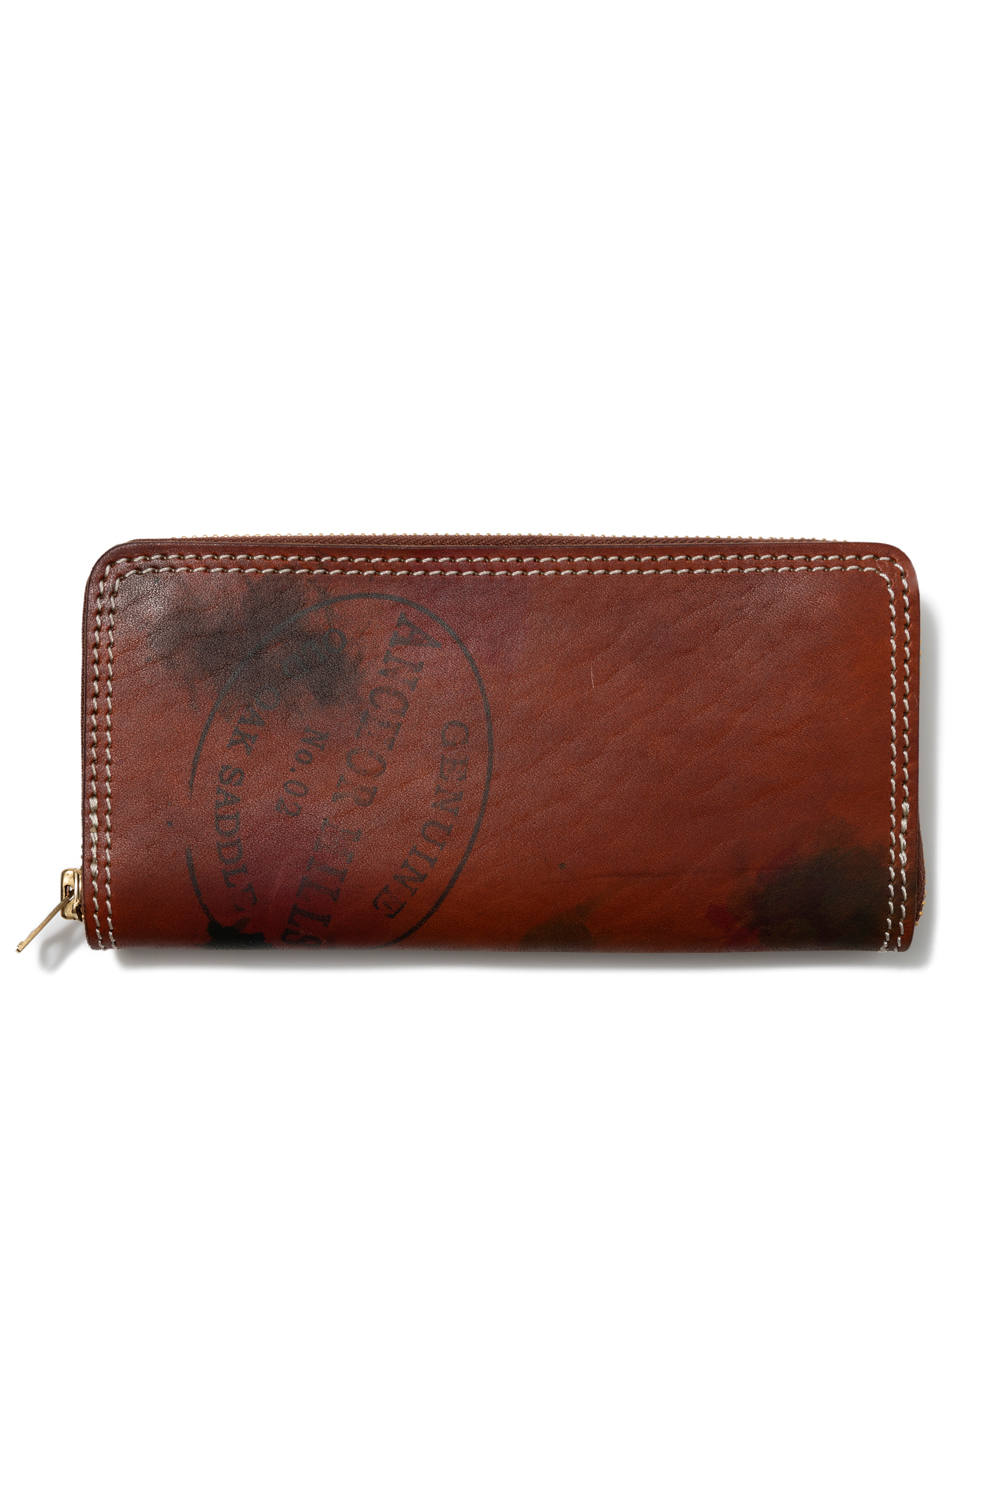 【19AW】ペイントレザーロングウォレット [キャメル] / PAINT LEATHER LONG WALLET [CAMEL]